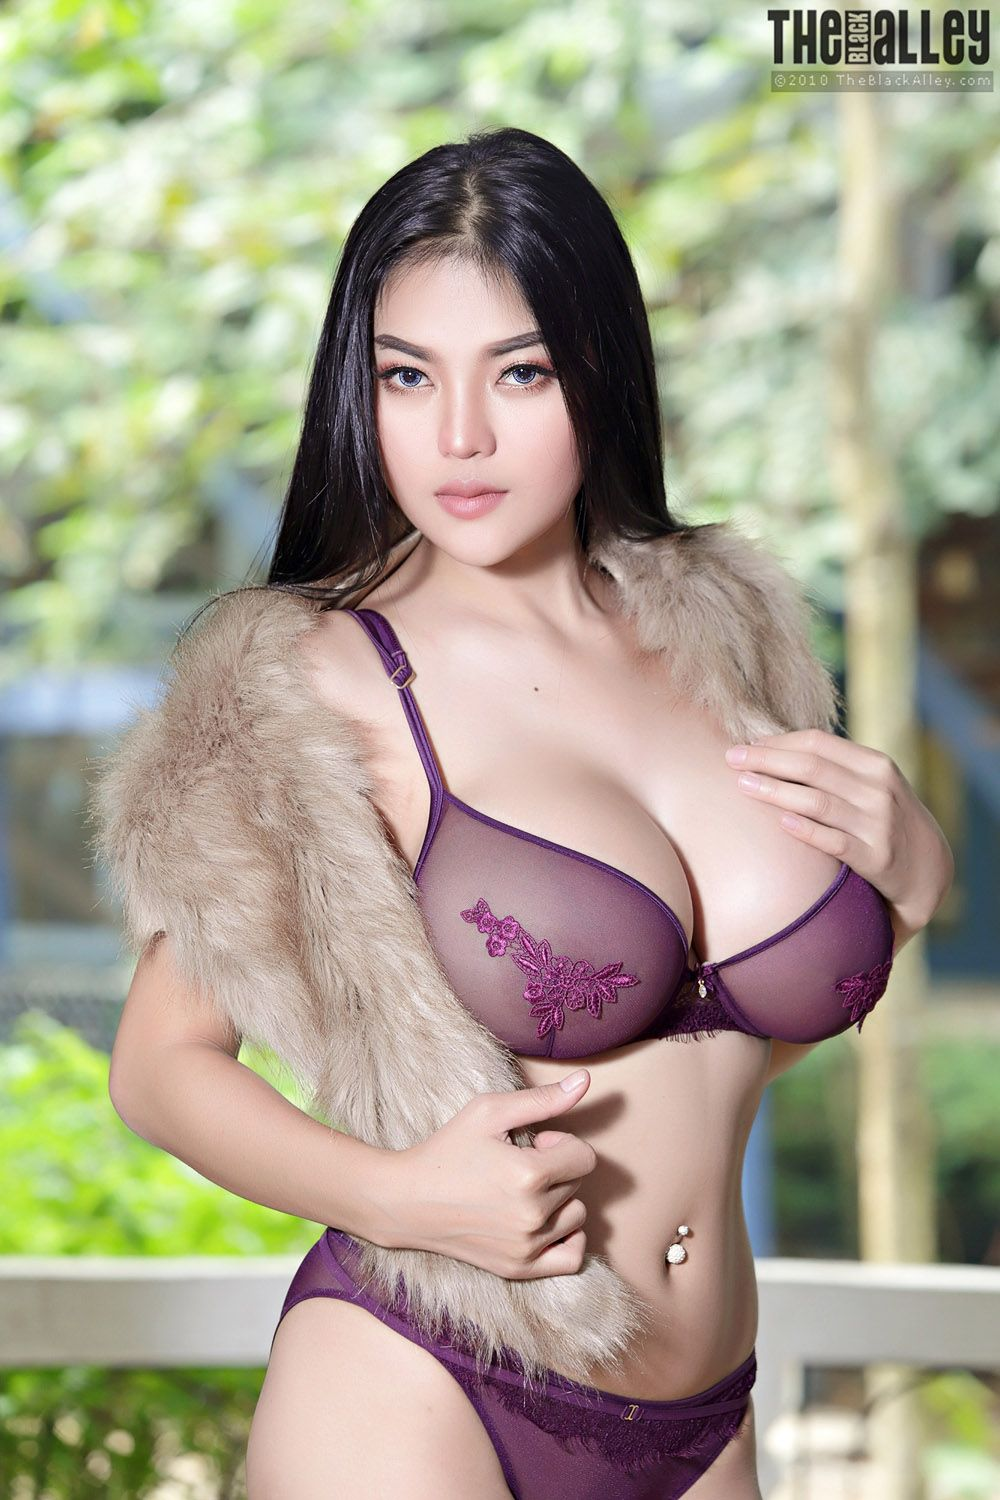 Agree, Busty asian lingerie